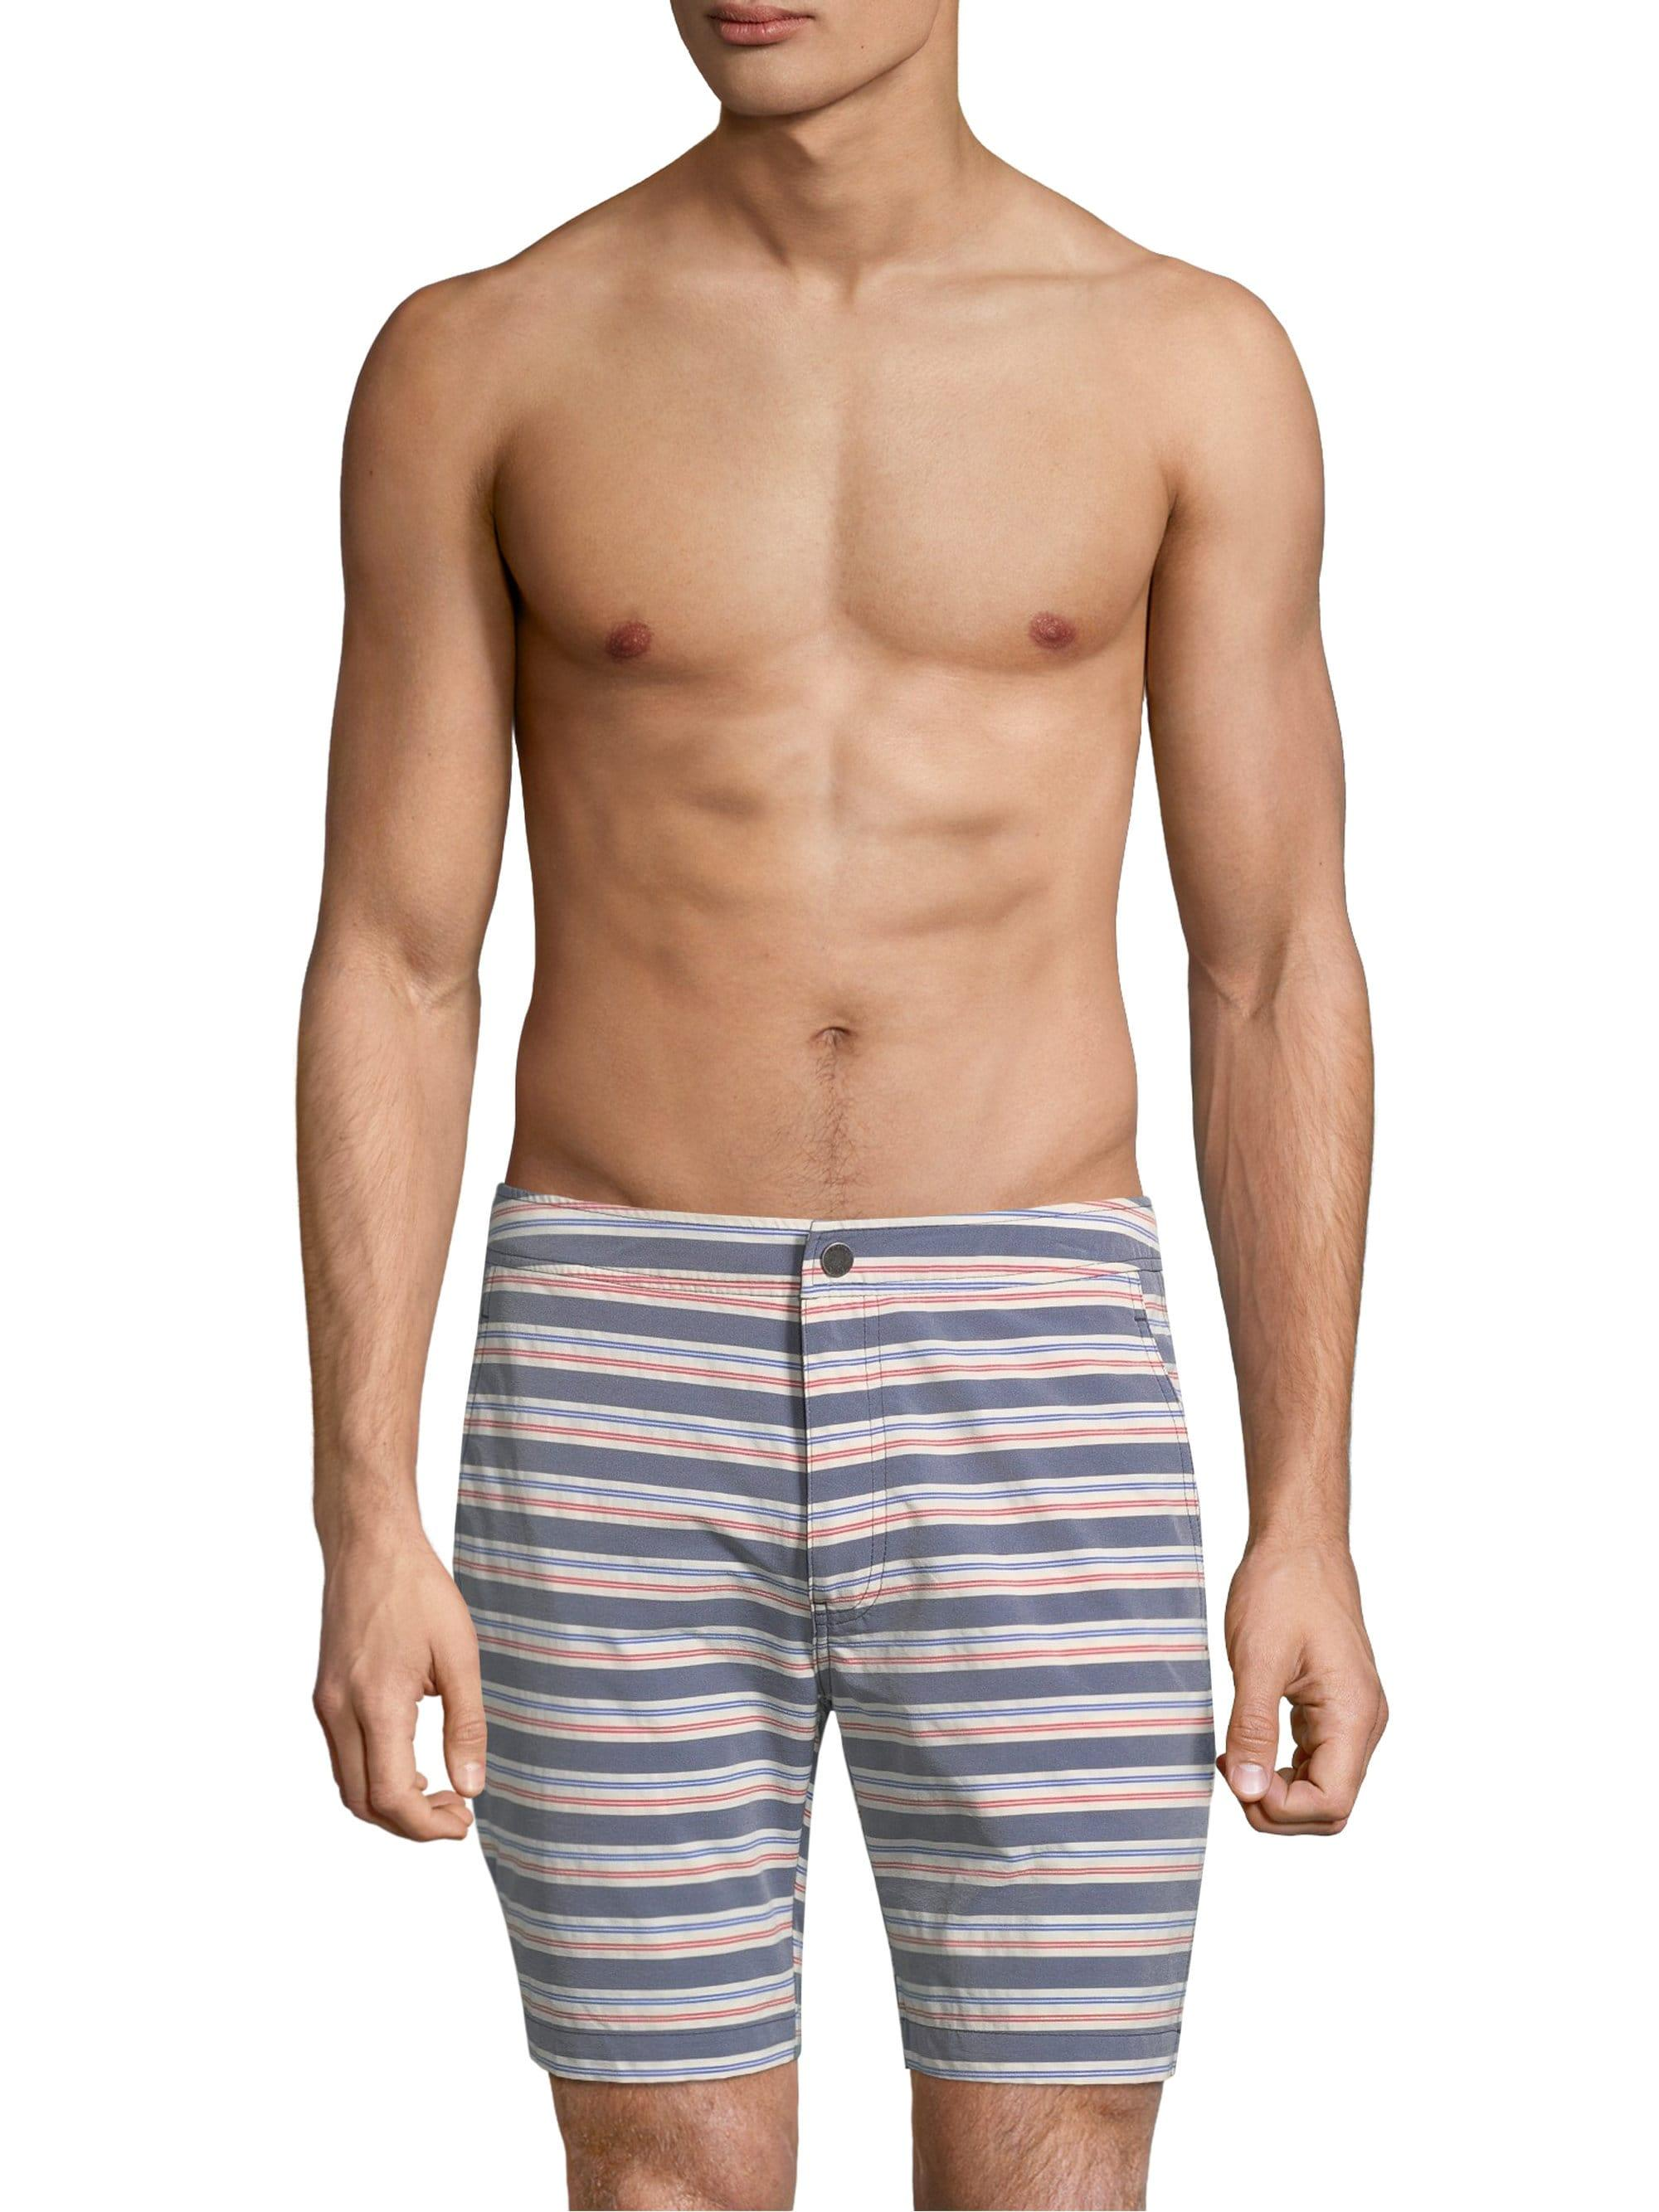 188c0a52cbbab Lyst - Onia Men's Americana Stripe Calder Swim Trunks - Size 38 in ...